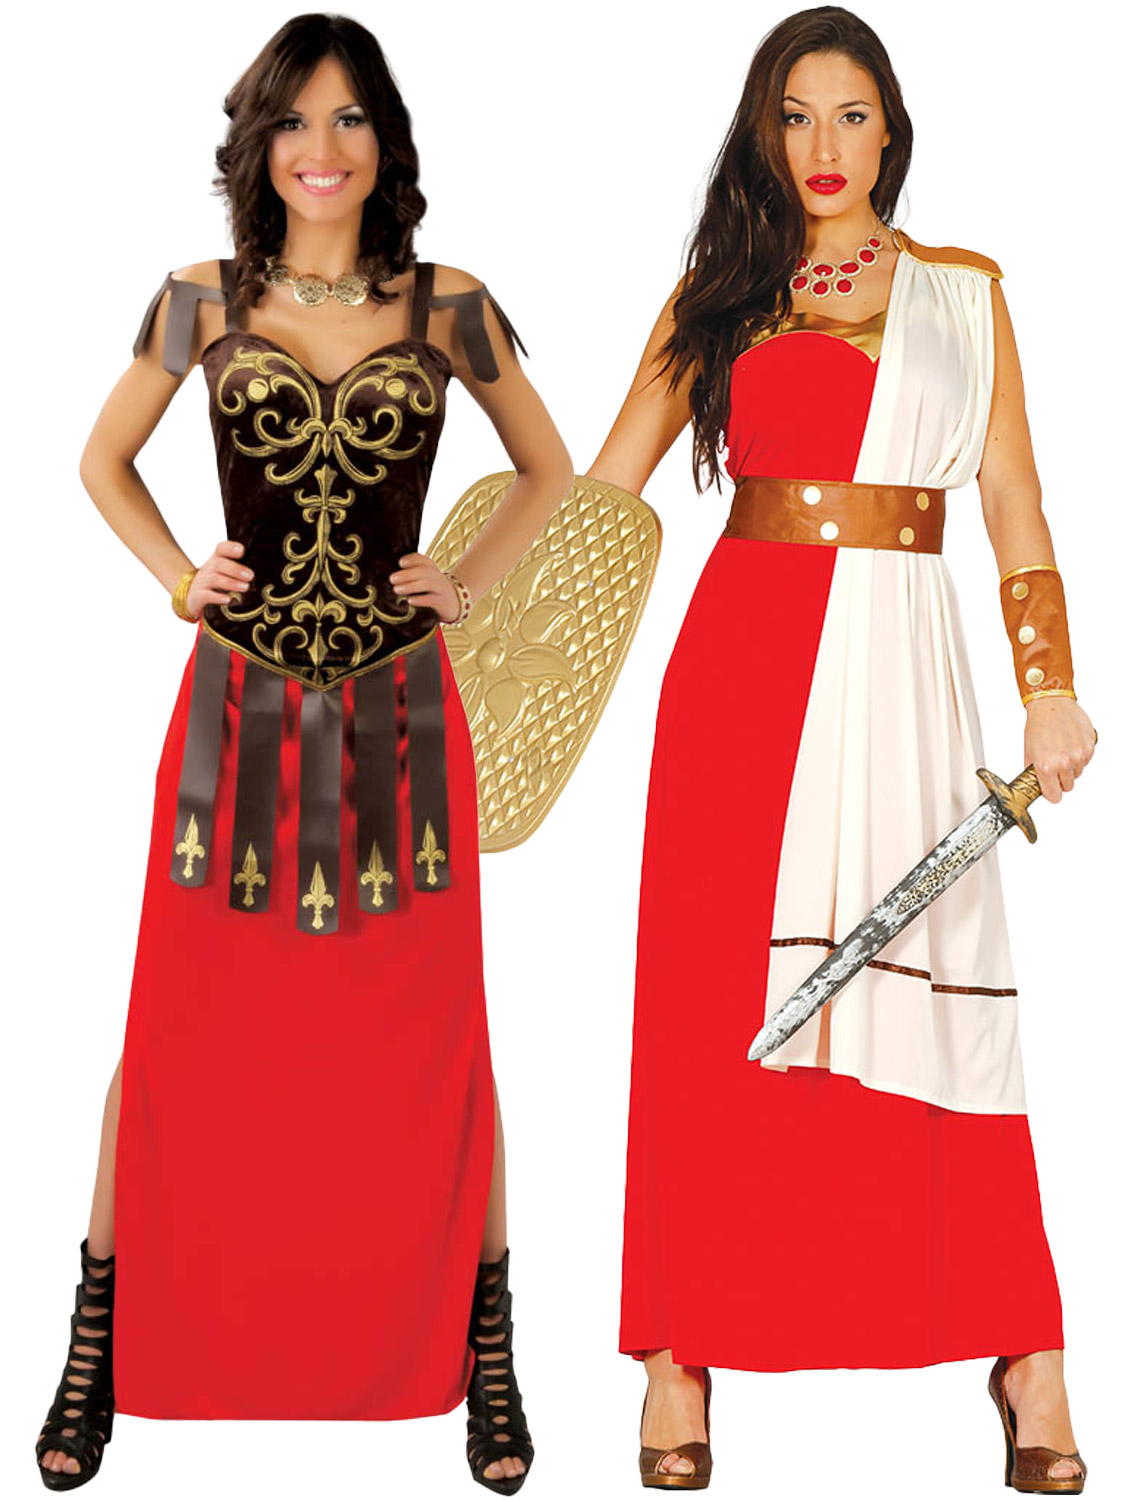 Ladies gladiator warrior costume adults spartan roman fancy dress transform yourself into a roman warrior with either this ladies tiberia costume or spartan outfit both perfect for a greek roman themed party solutioingenieria Choice Image